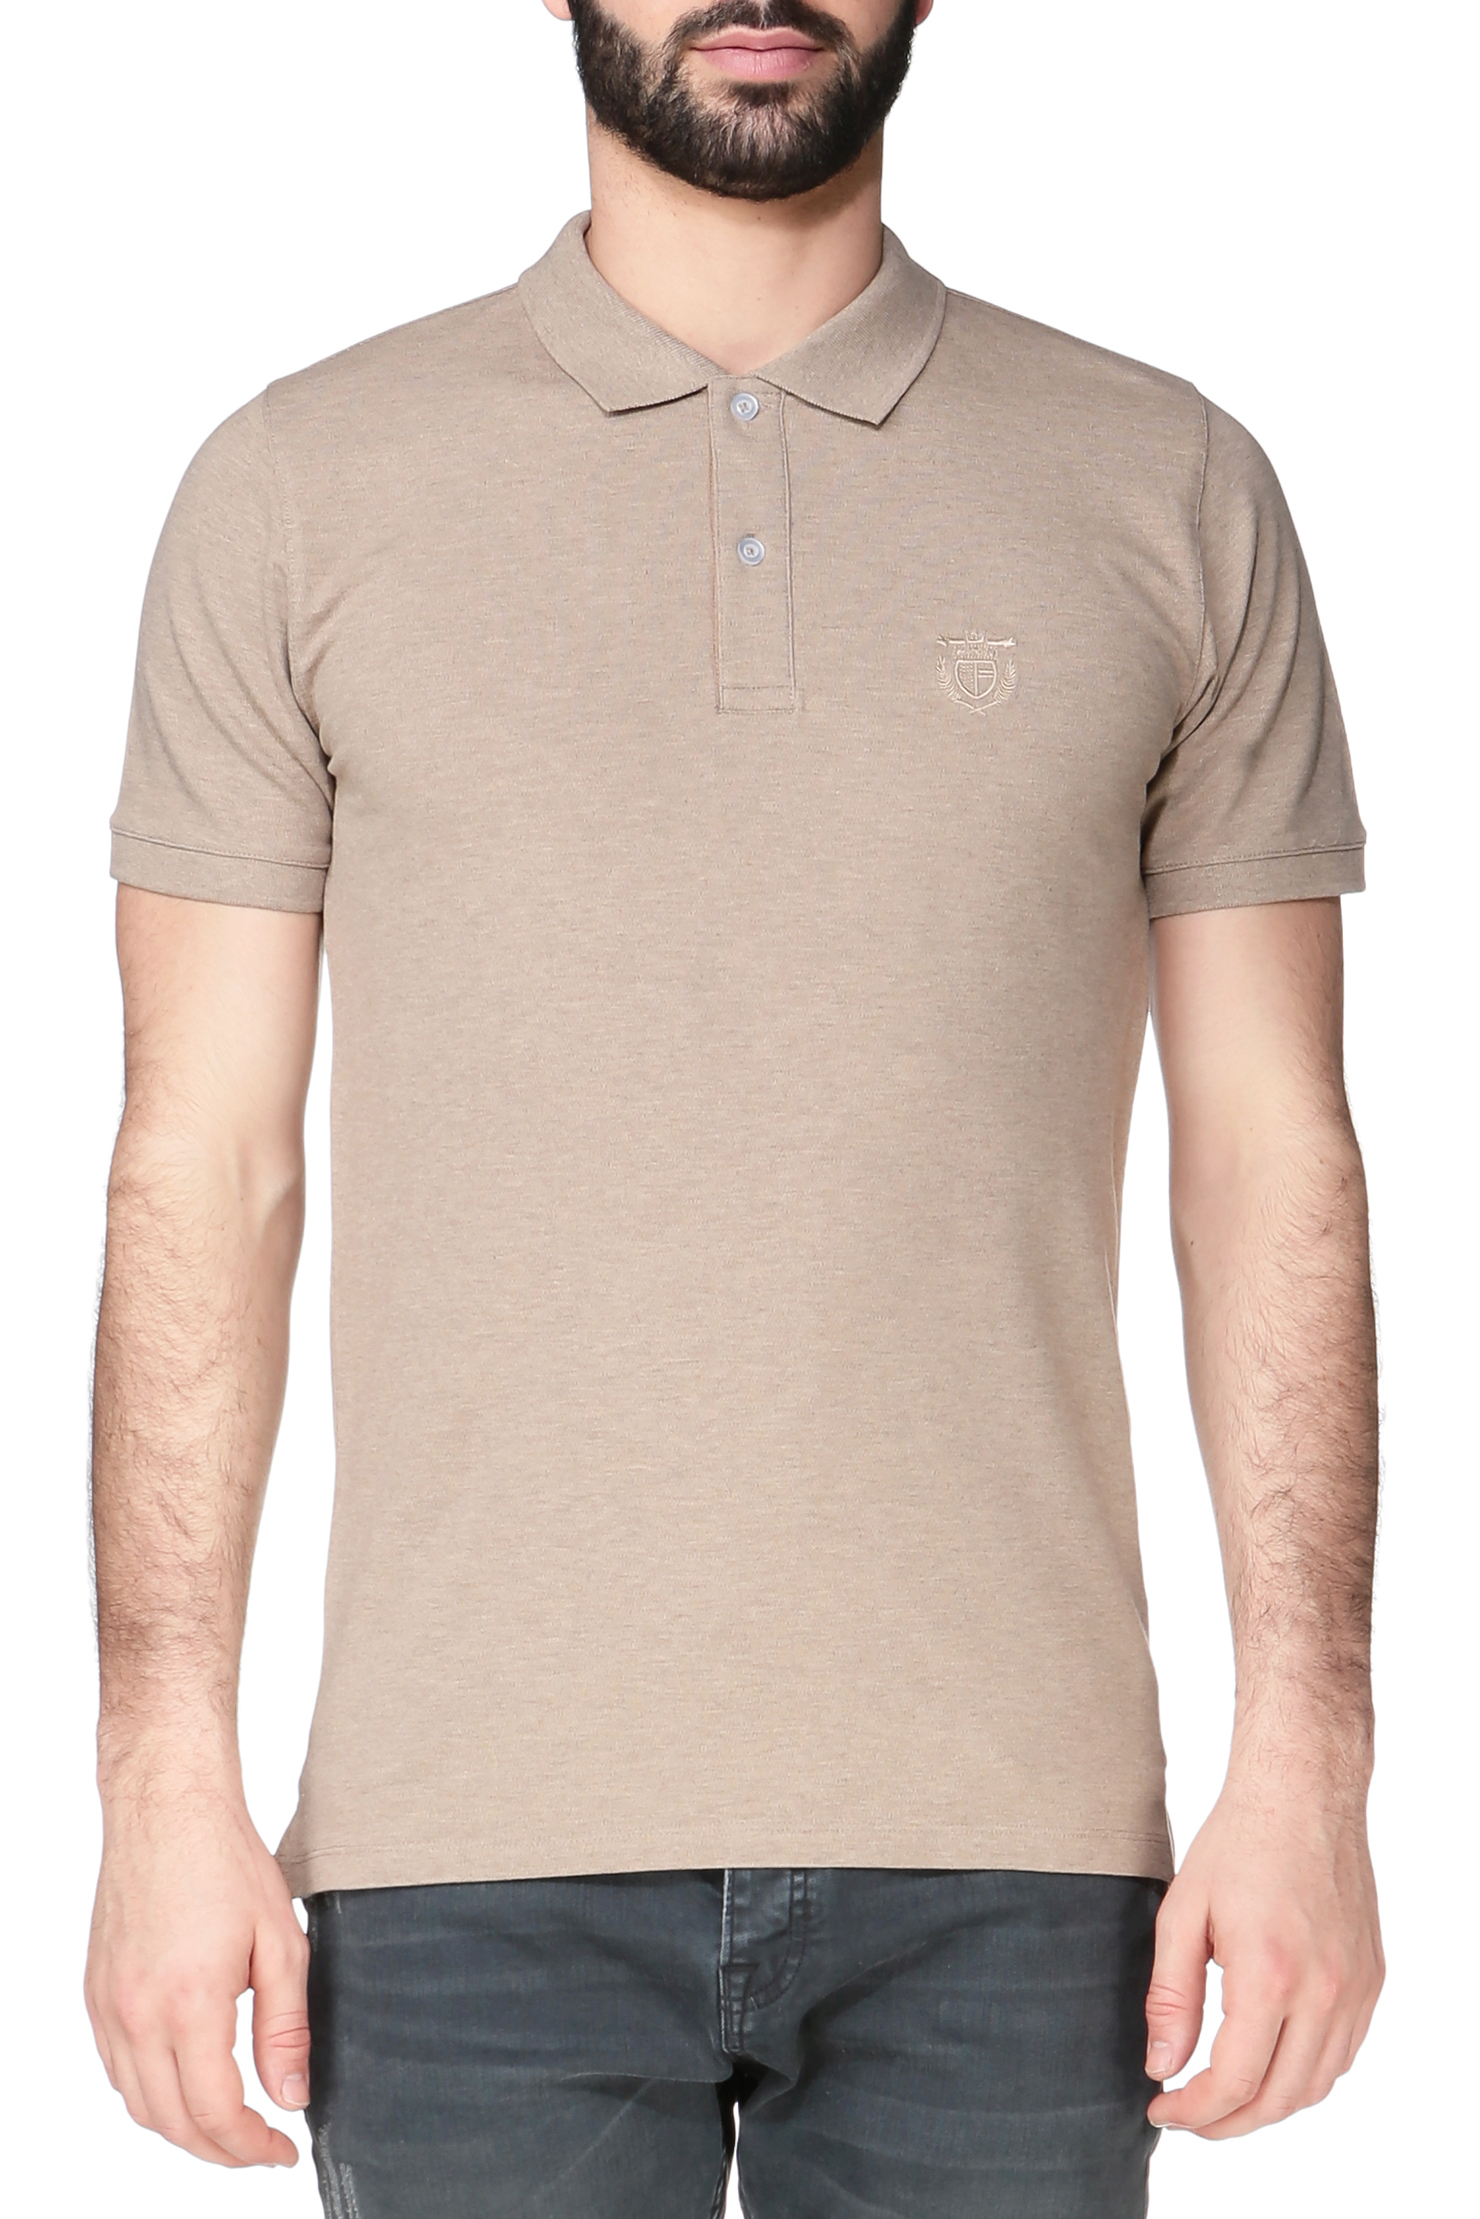 Selected Polo Shirt In Brown For Men Lyst